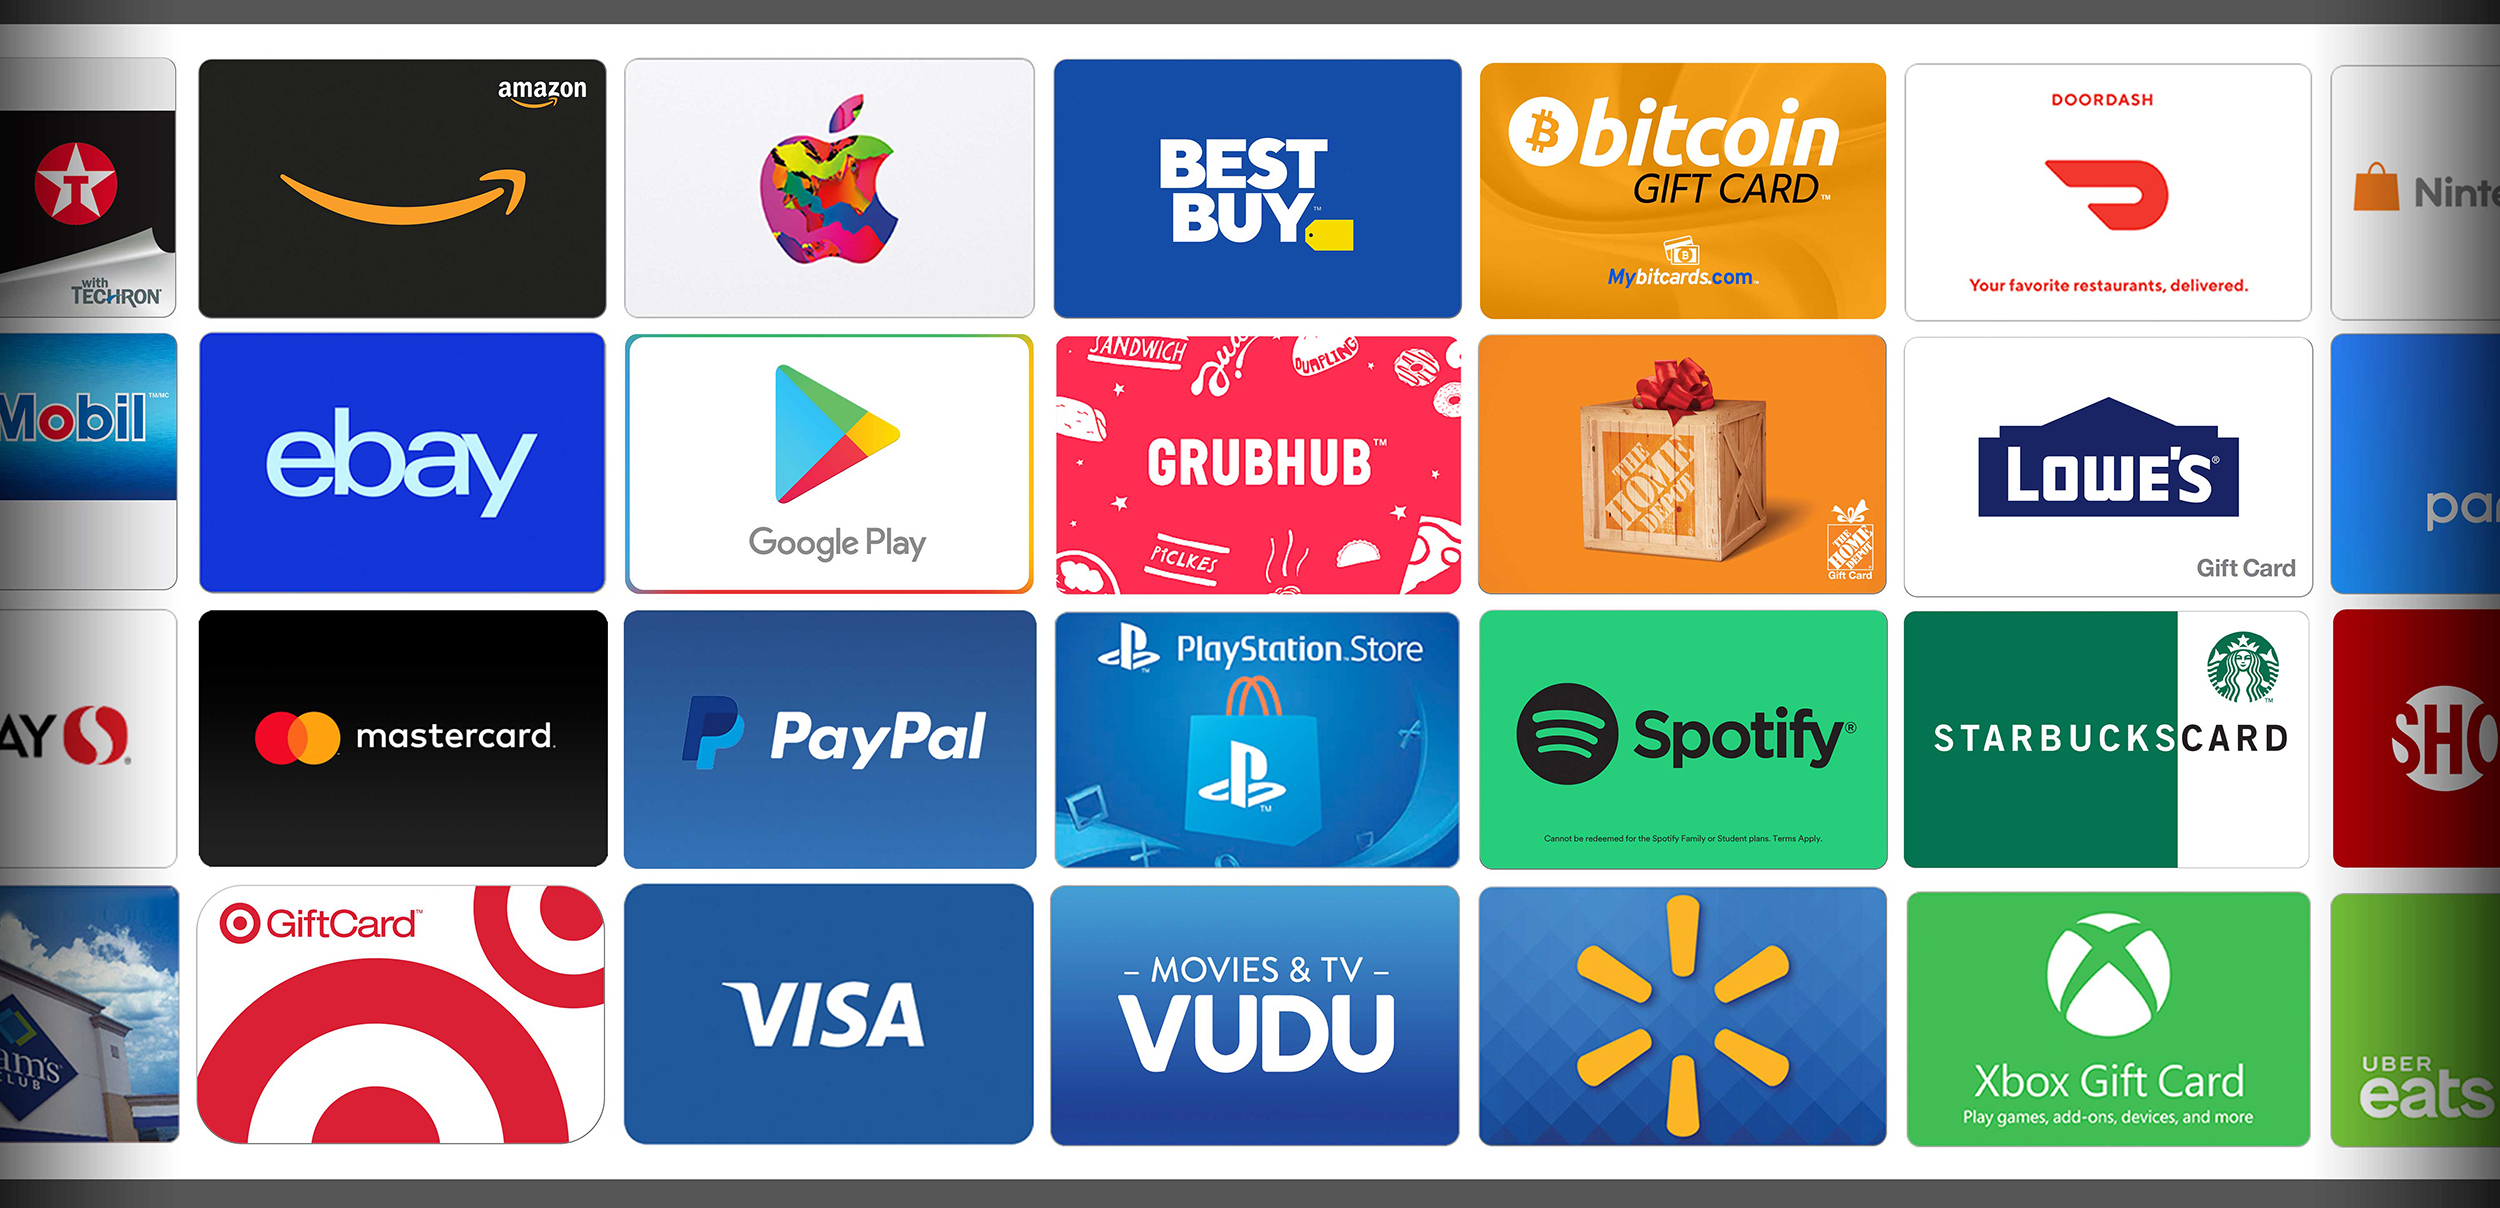 Digital Rewards – Stay at Home, Streaming Services, Grocery, Meal Delivery